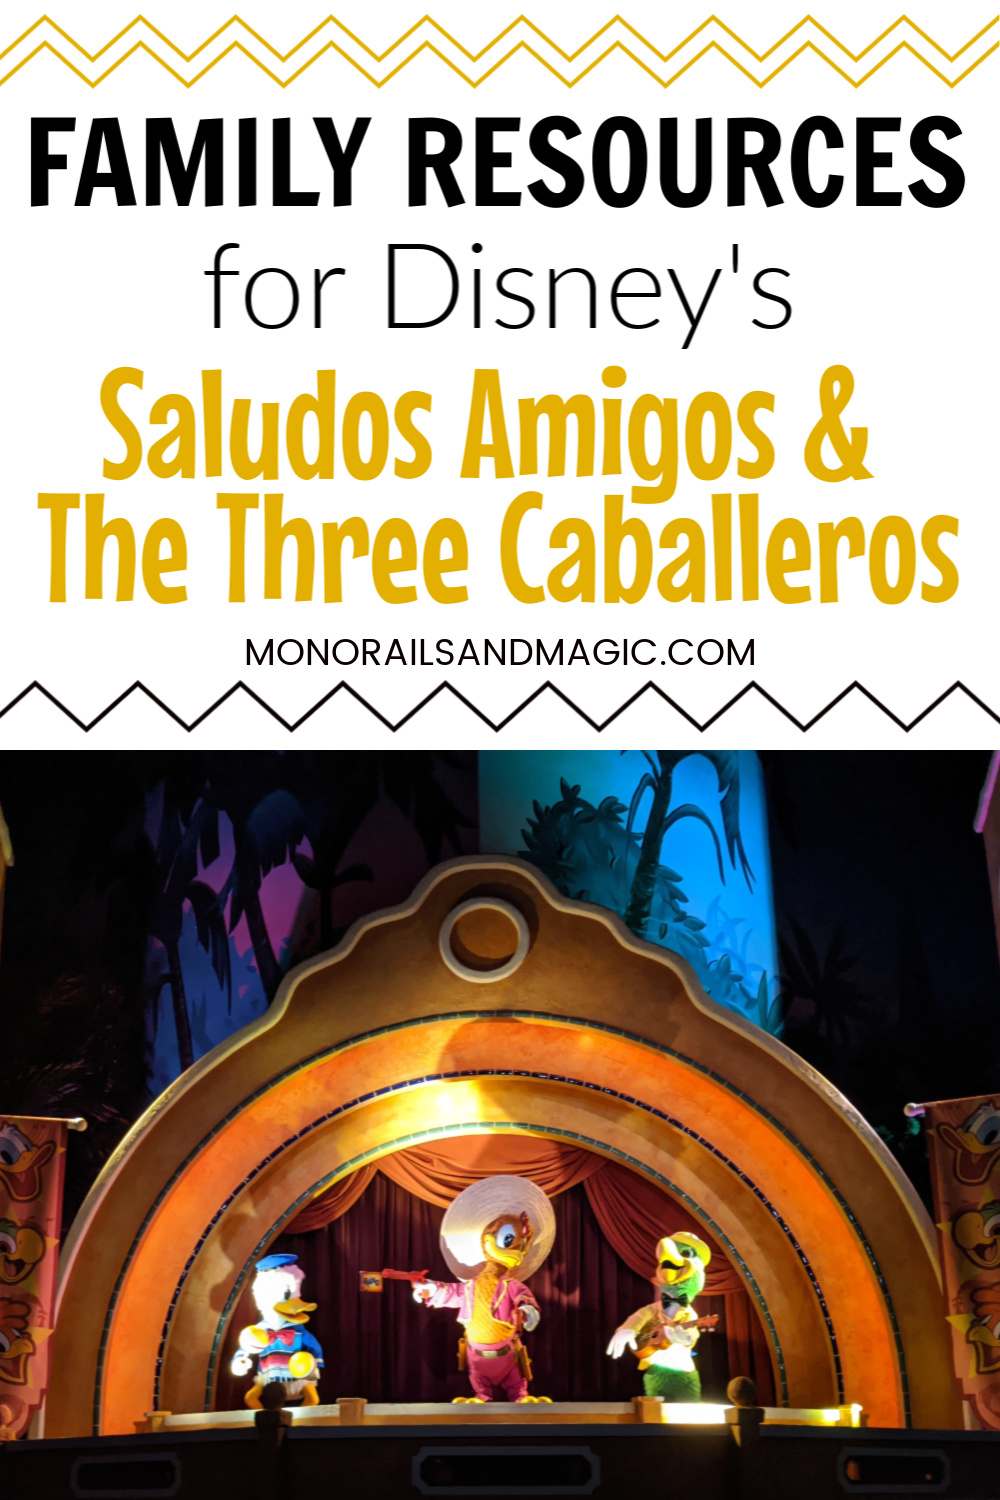 Family Resources for Disney's Saludos Amigos and The Three Caballeros